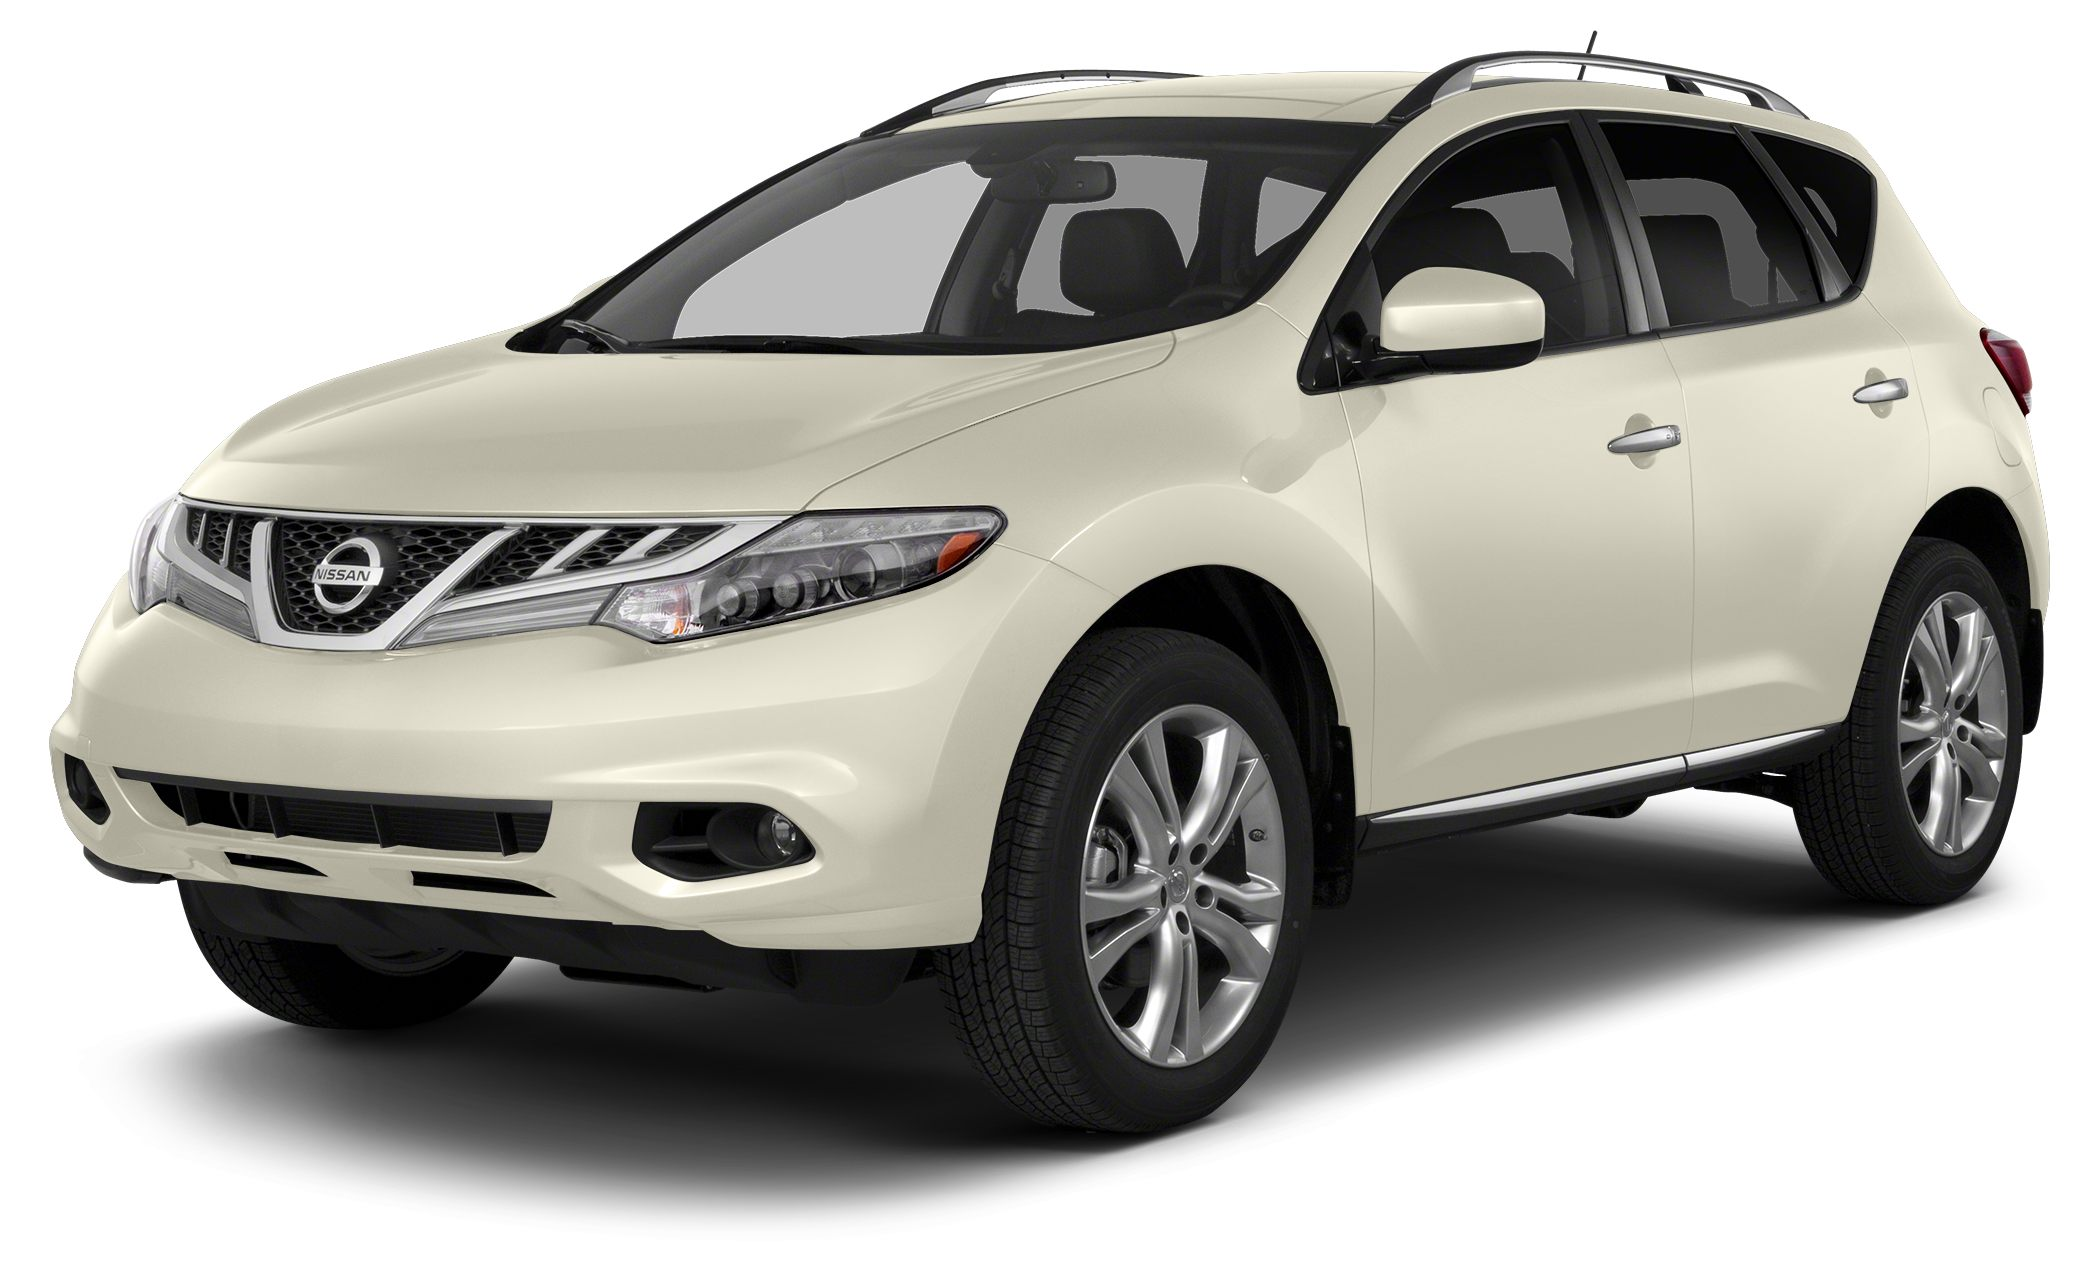 2014 Nissan Murano S 4D Sport Utility 35L V6 DOHC FWD Pearl White Beige wCloth Seat Trim AB